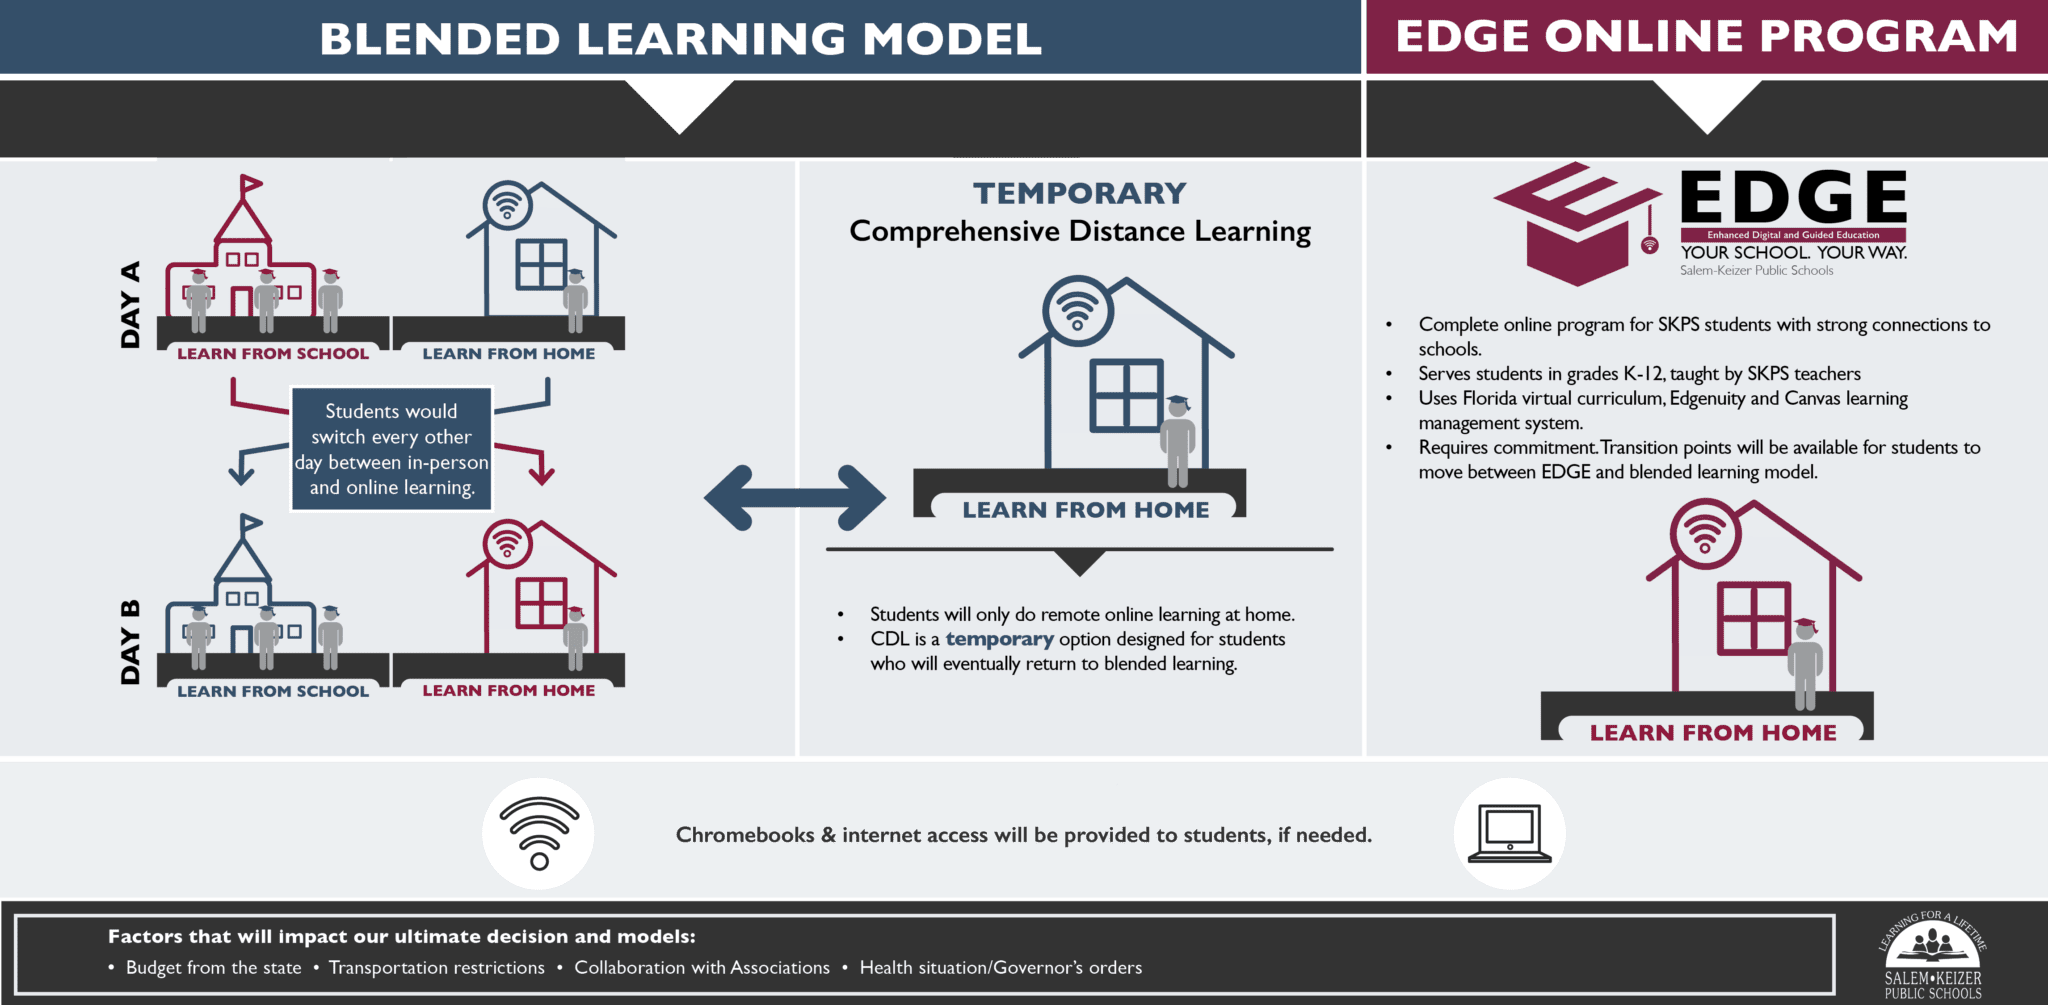 Blended Learning, Comprehensive Distance Learning and EDGE Explained